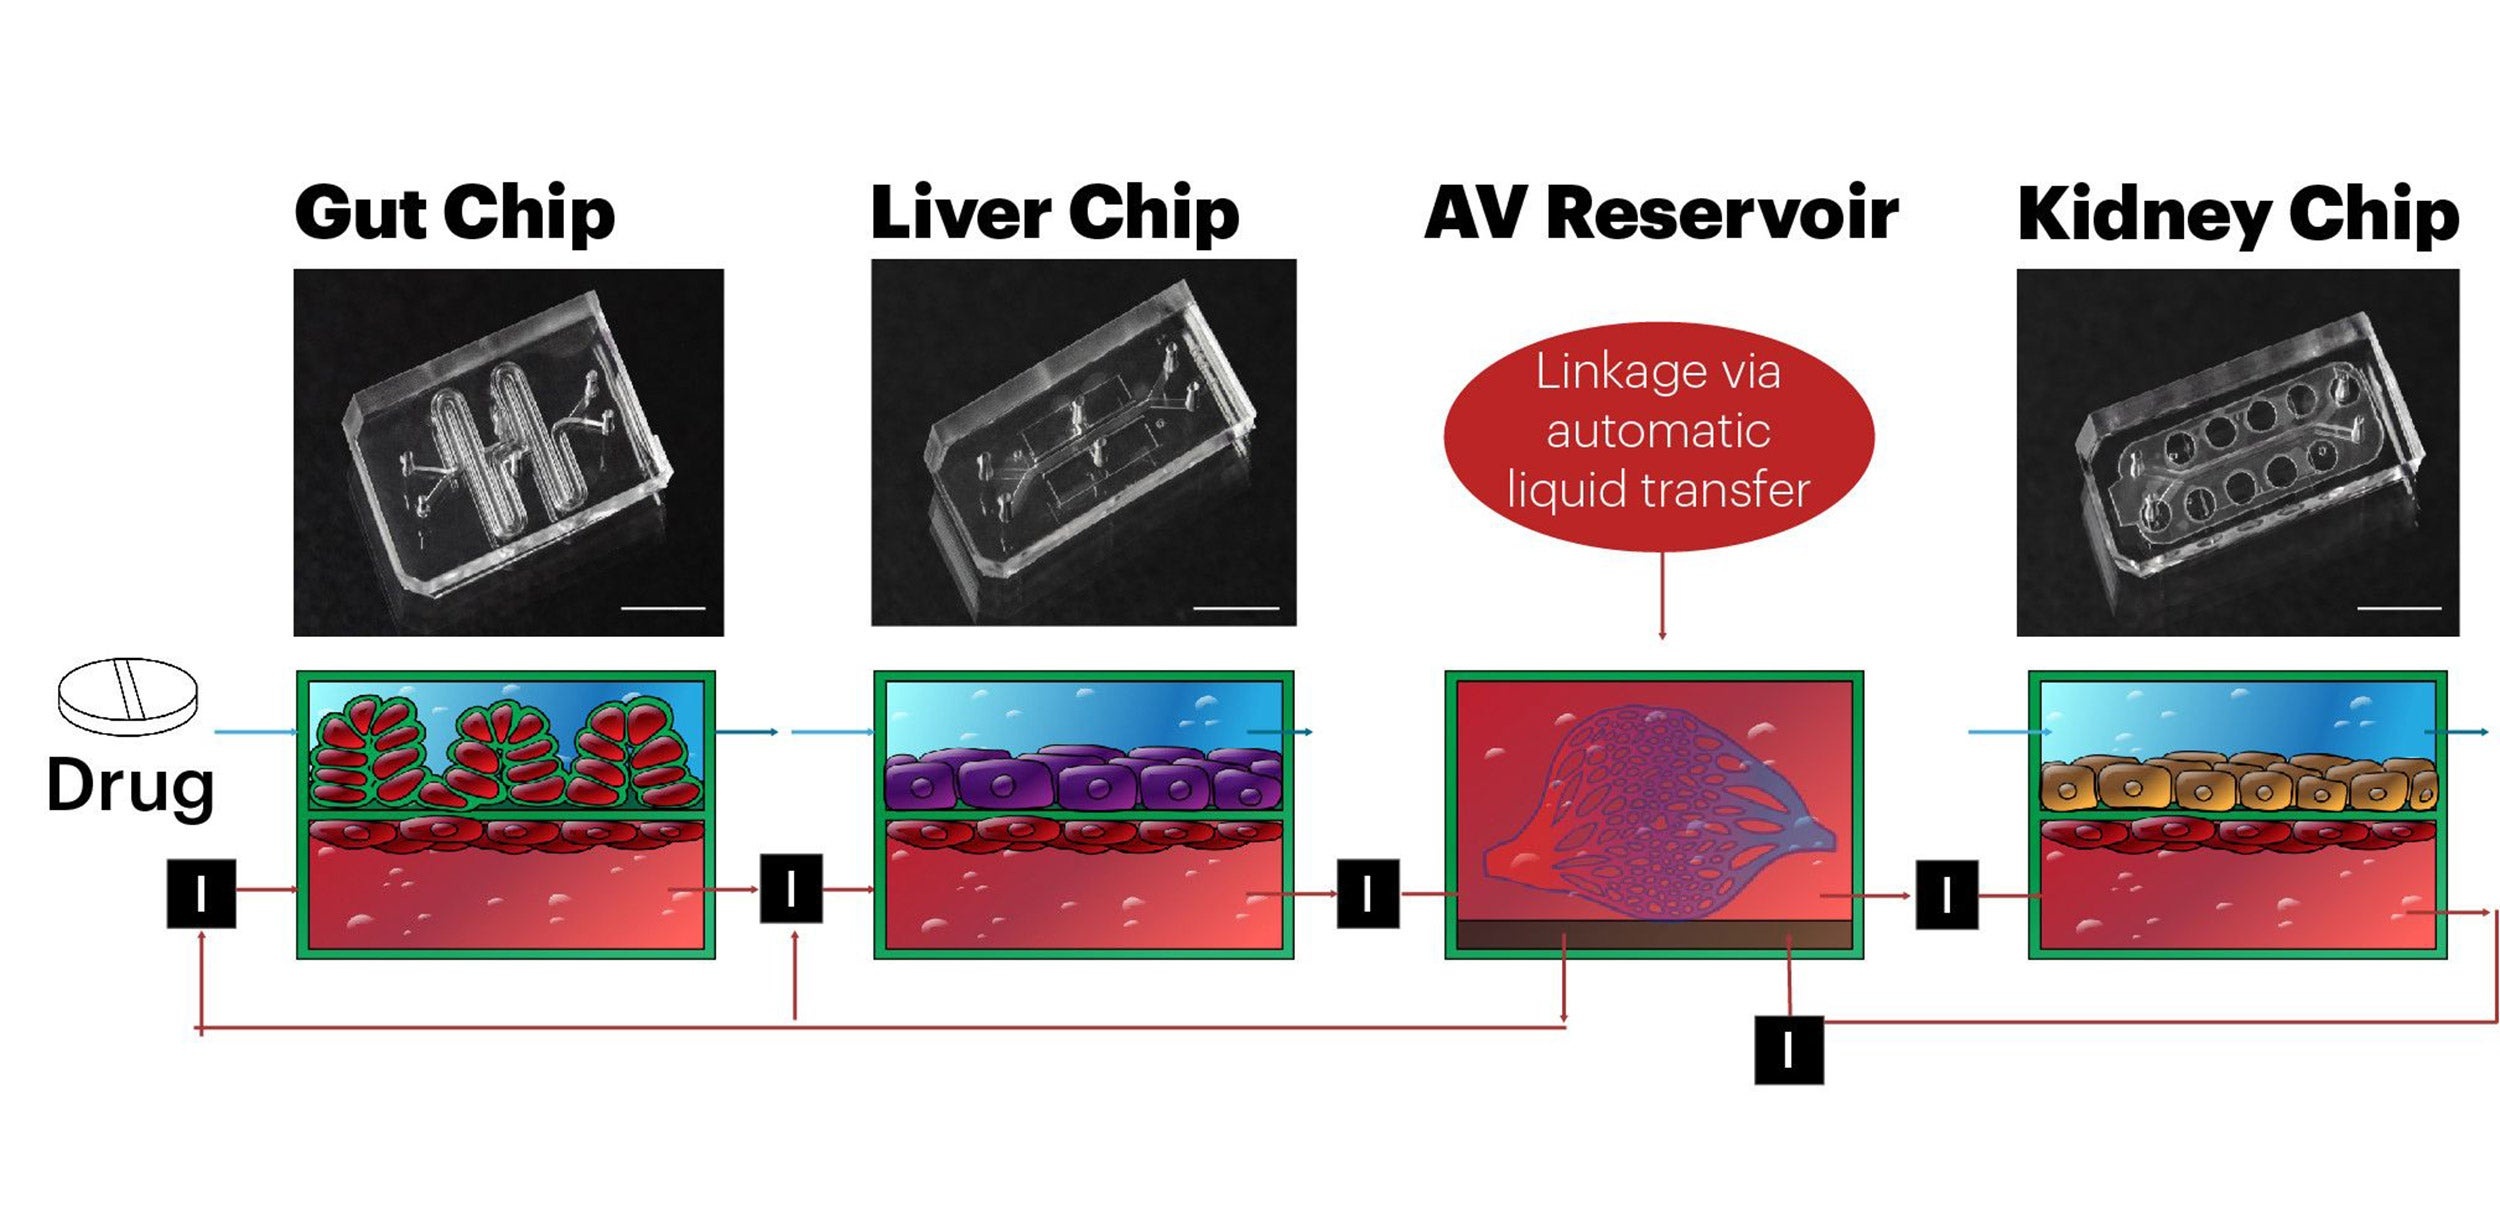 Graphic of organs on a chip.